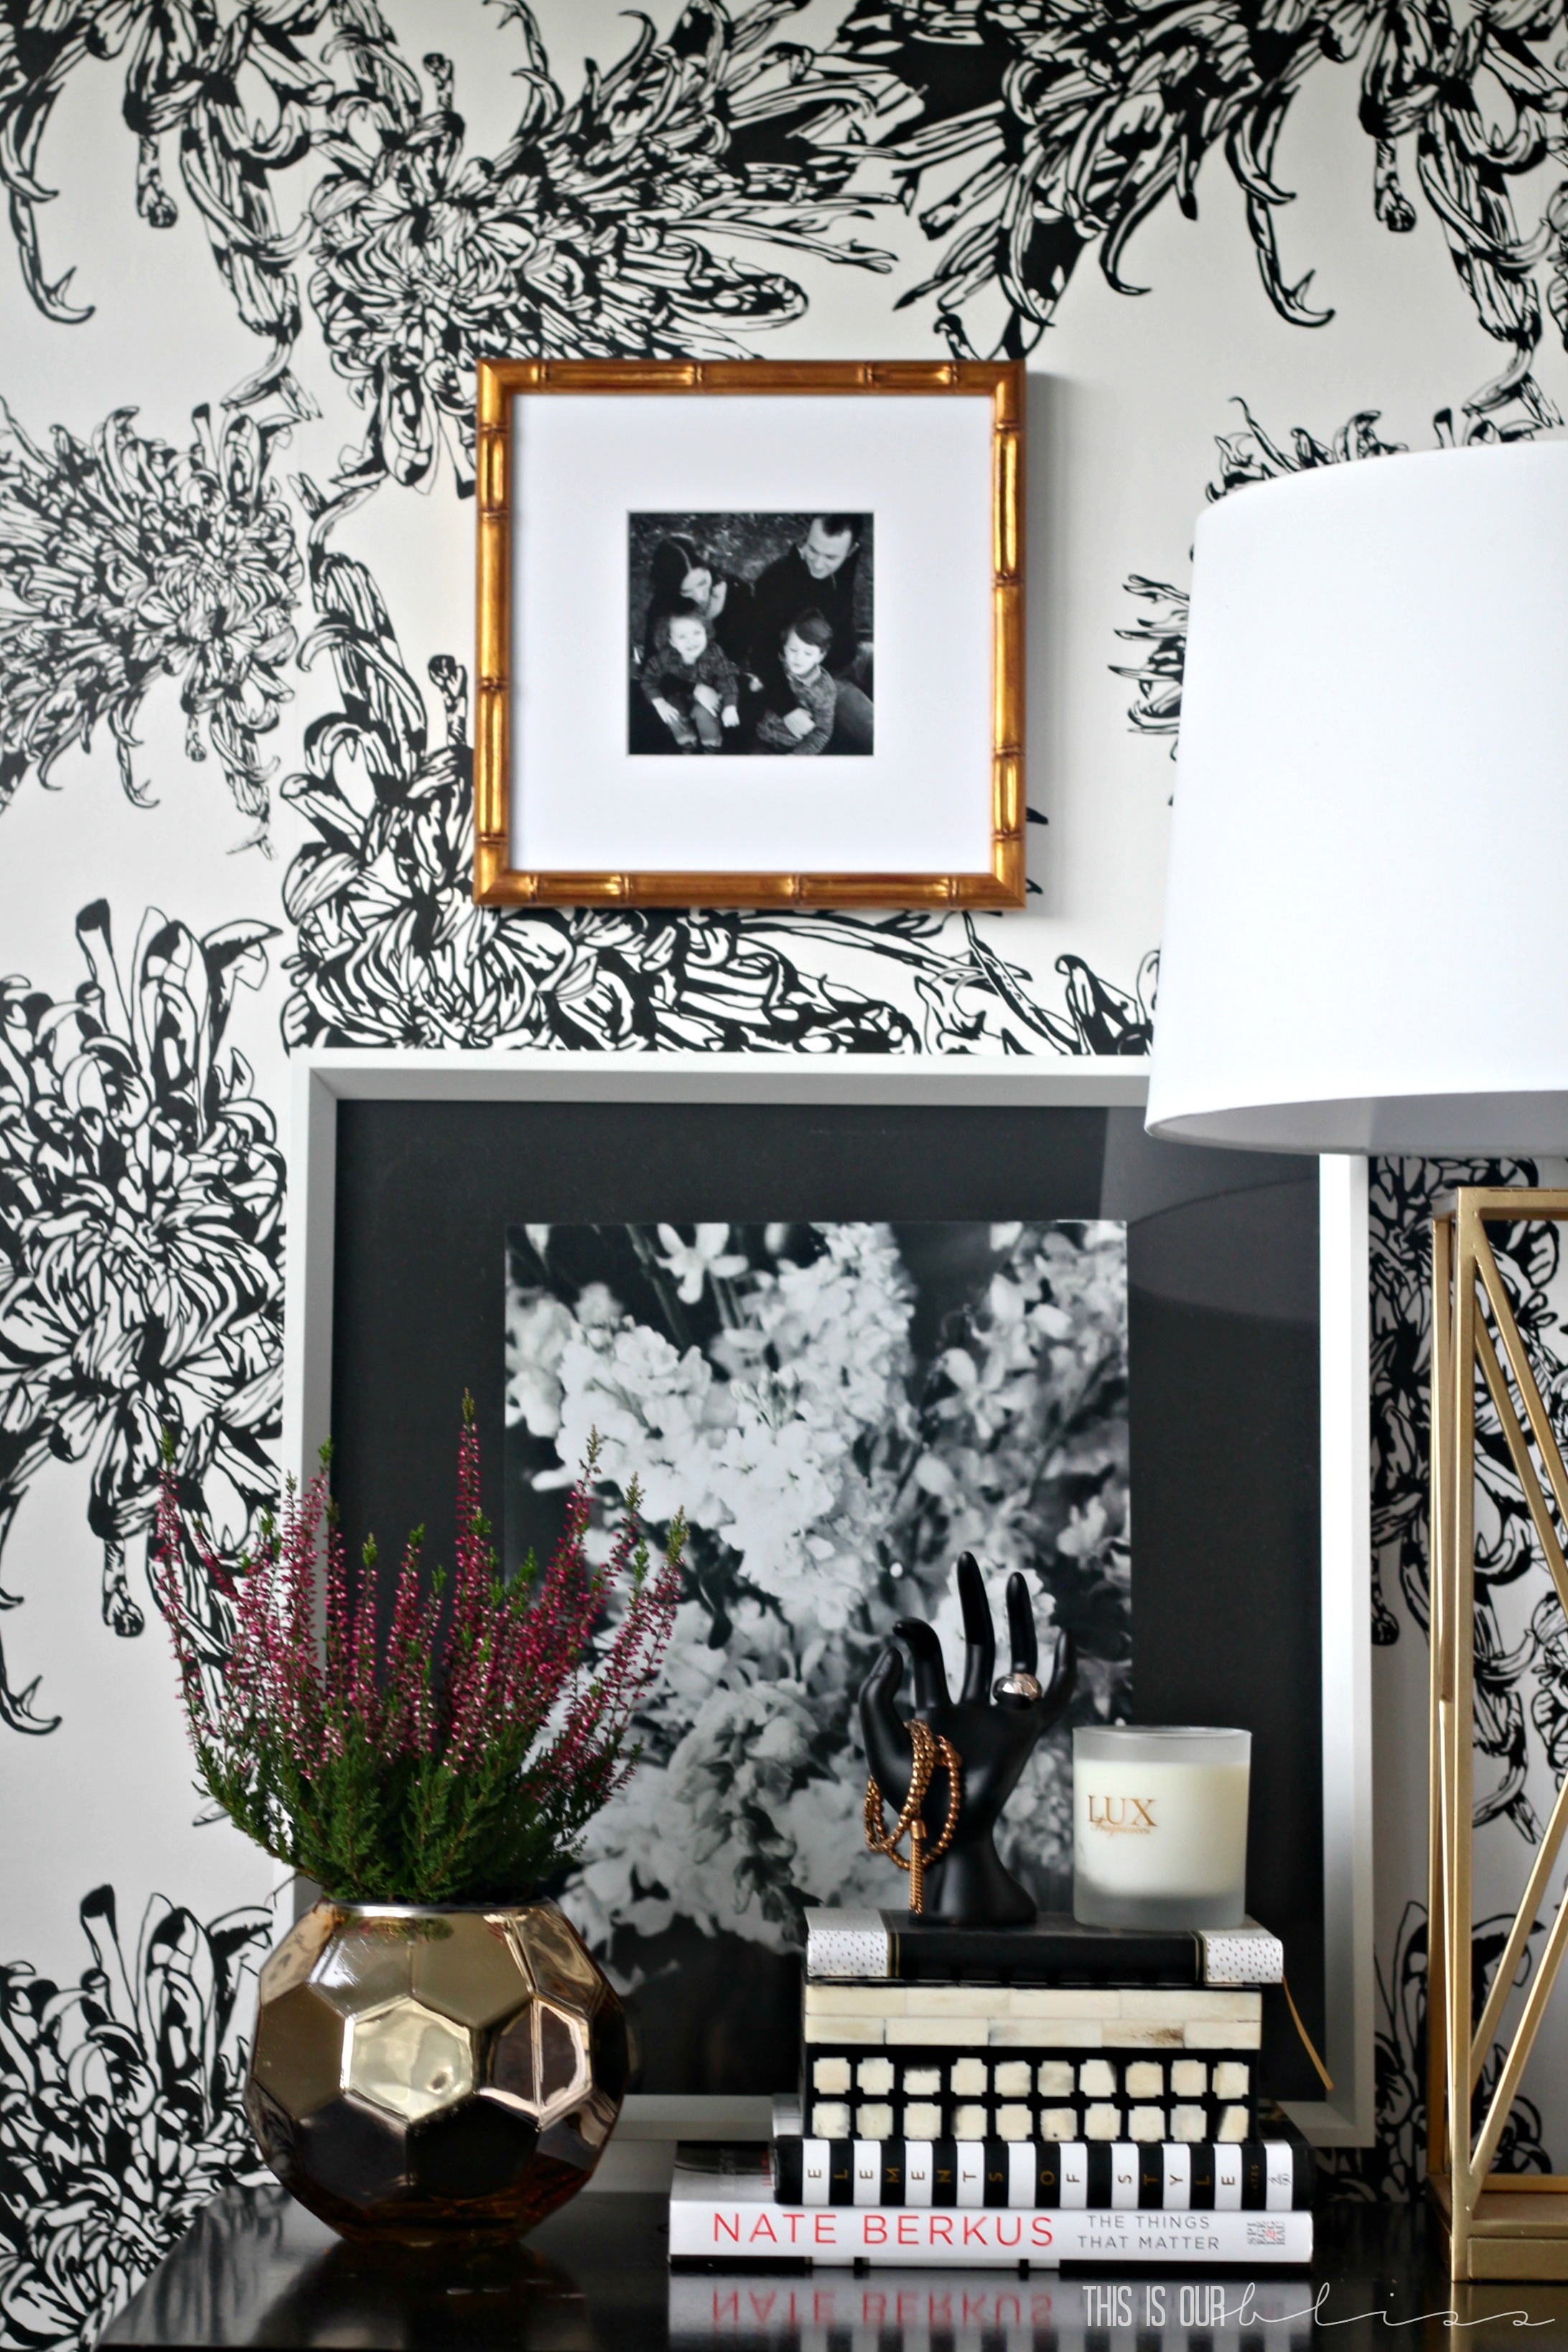 How To Style A Nightstand With Black White Gold Decor This Is Our Bliss Www Thisisourbliss Com This Is Our Bliss